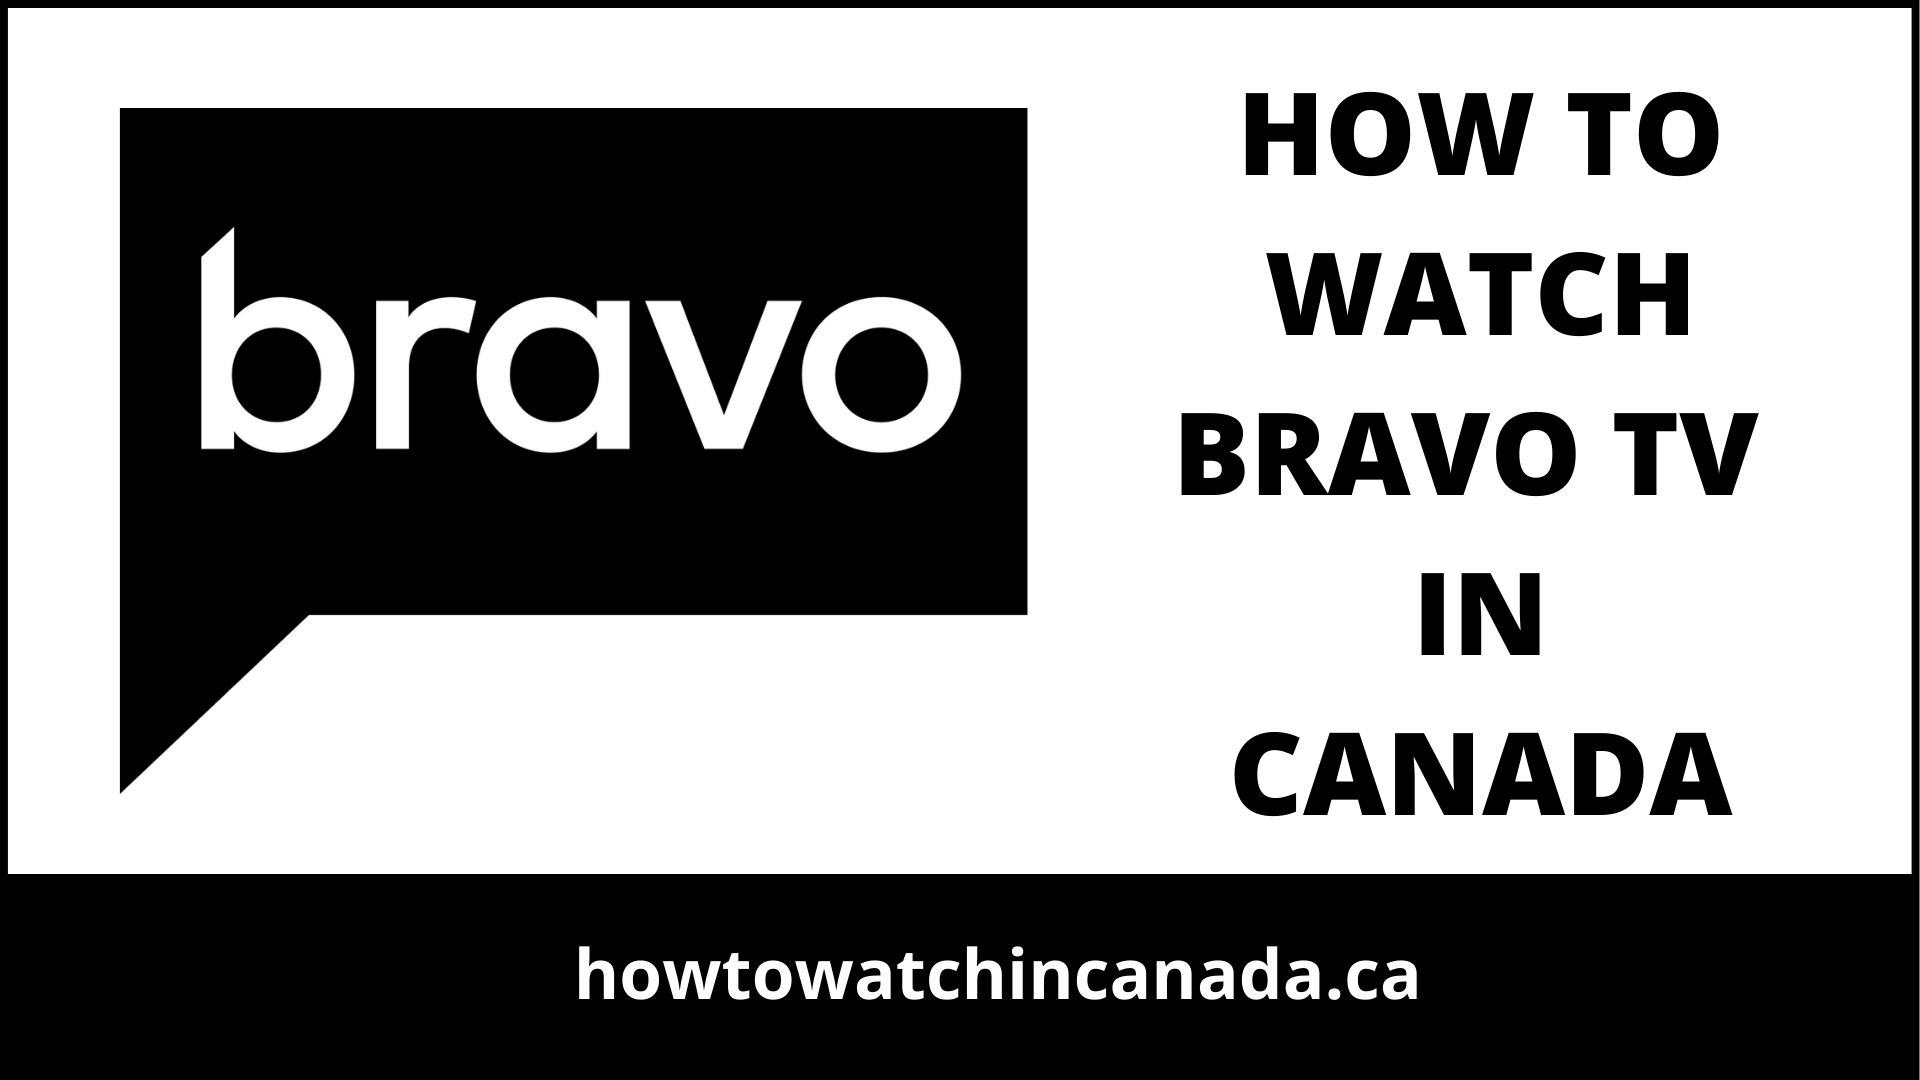 bravo-tv-feat-how-to-watch-in-canada